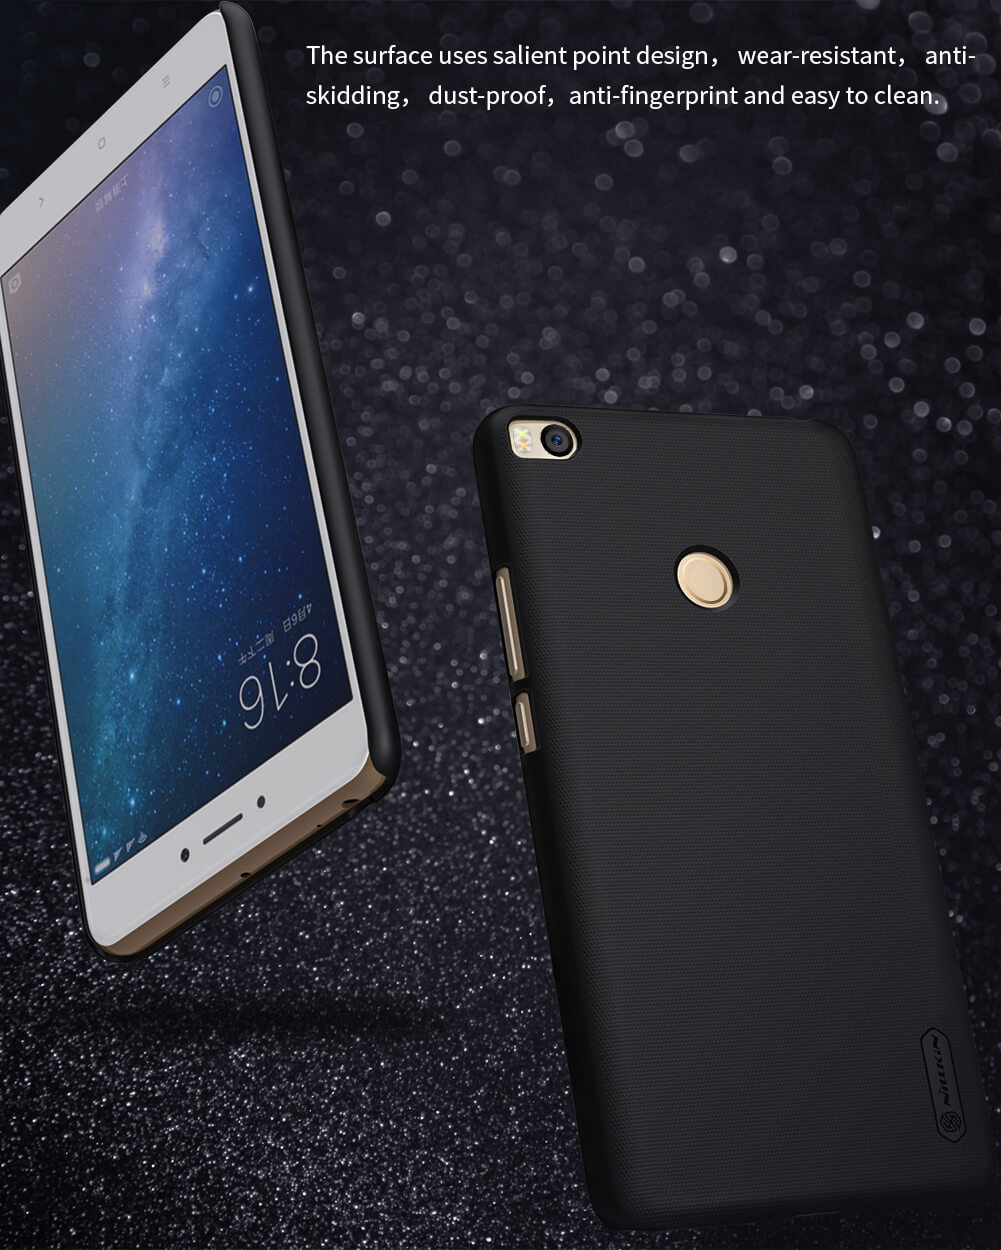 Nillkin Super Frosted Shield Matte cover case for Xiaomi Mi MAX 2 + free screen protector